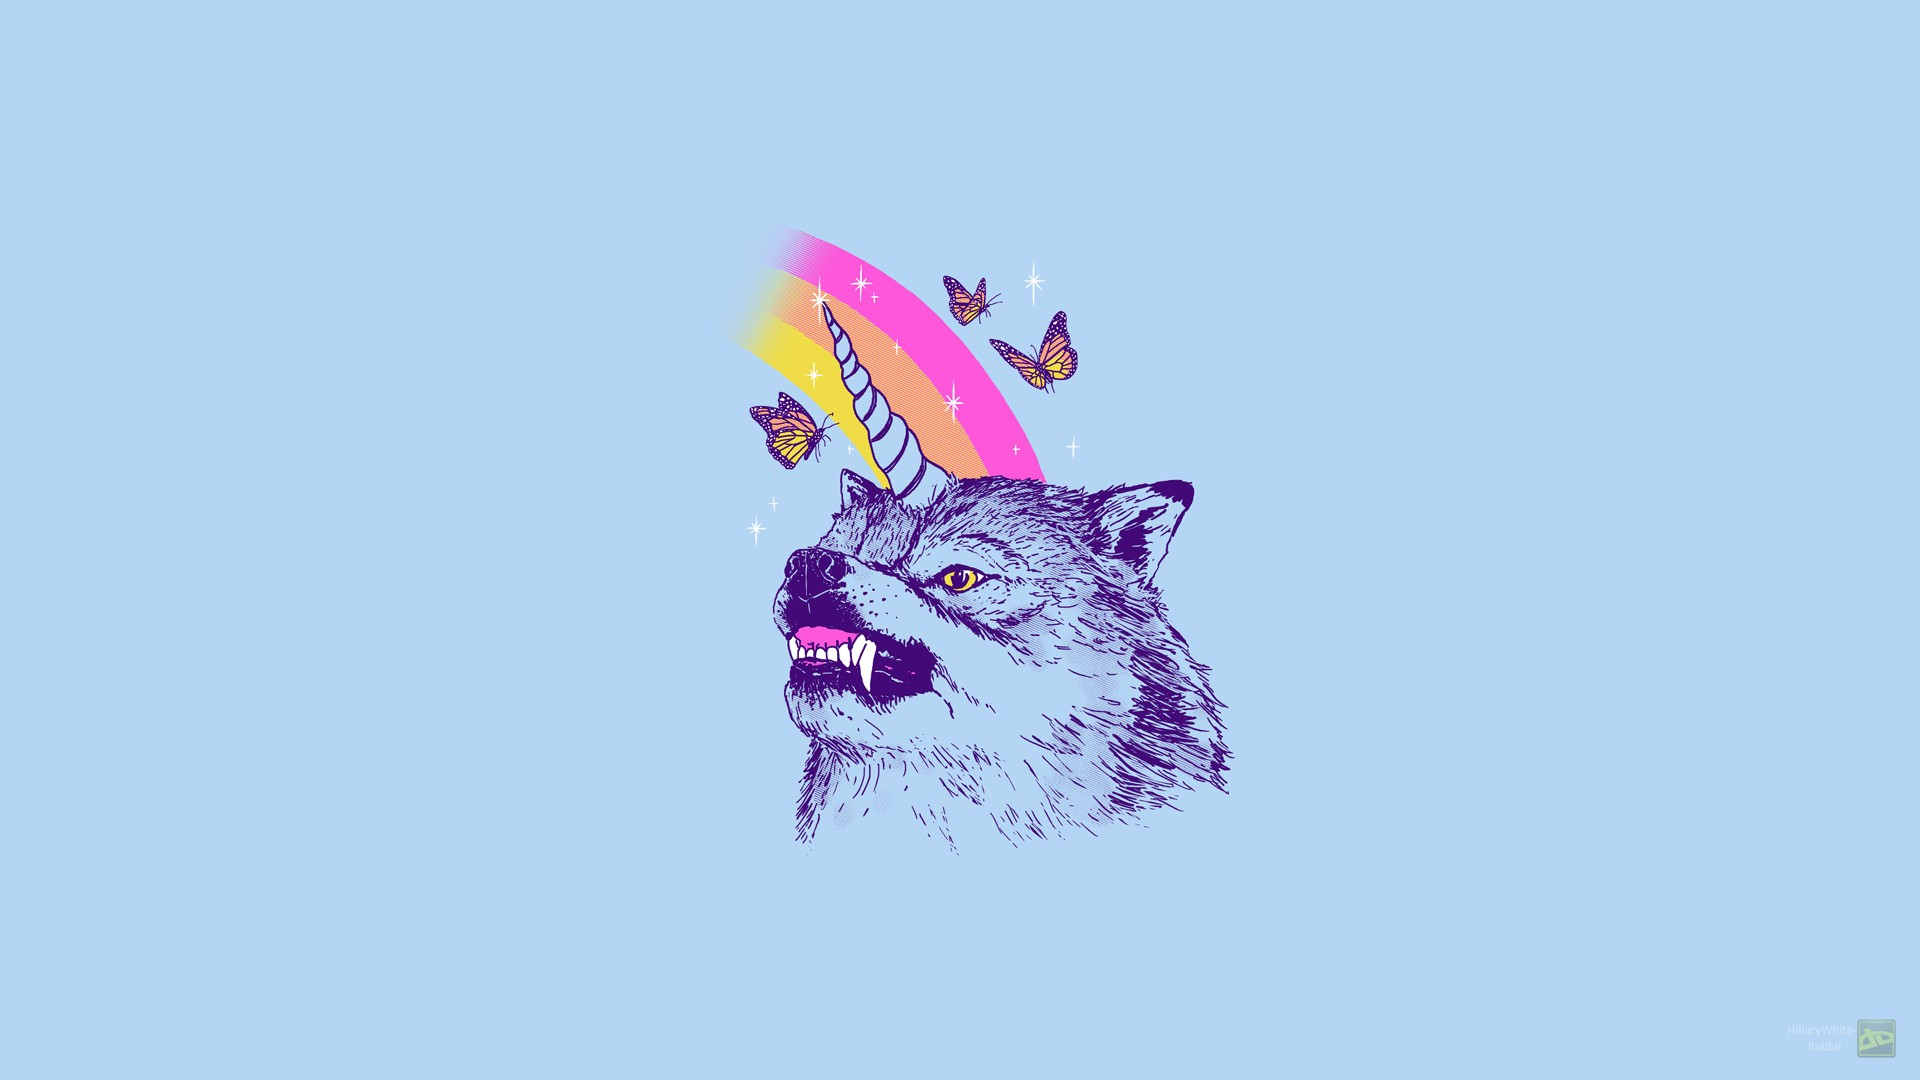 General 1920x1080 wolf unicorn LSD drugs simple butterfly animals